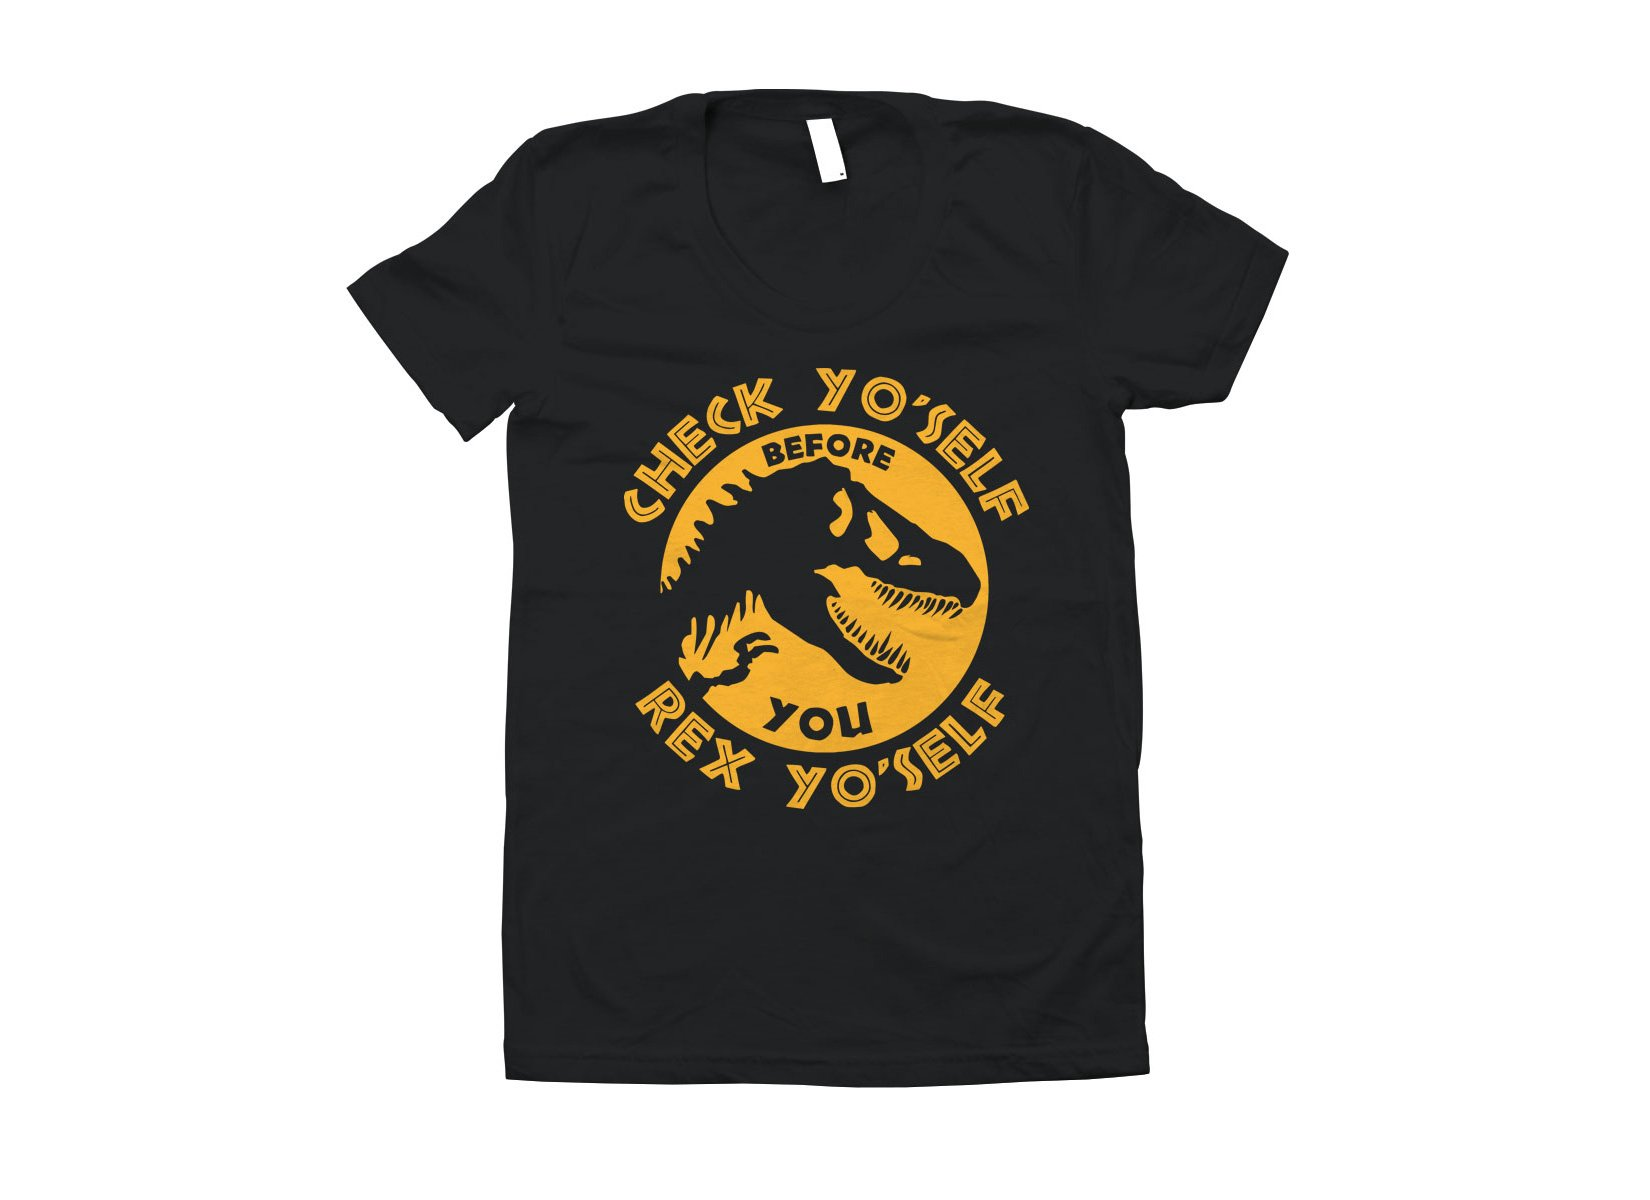 Check Yo'Self Before You Rex Yo'Self on Juniors T-Shirt